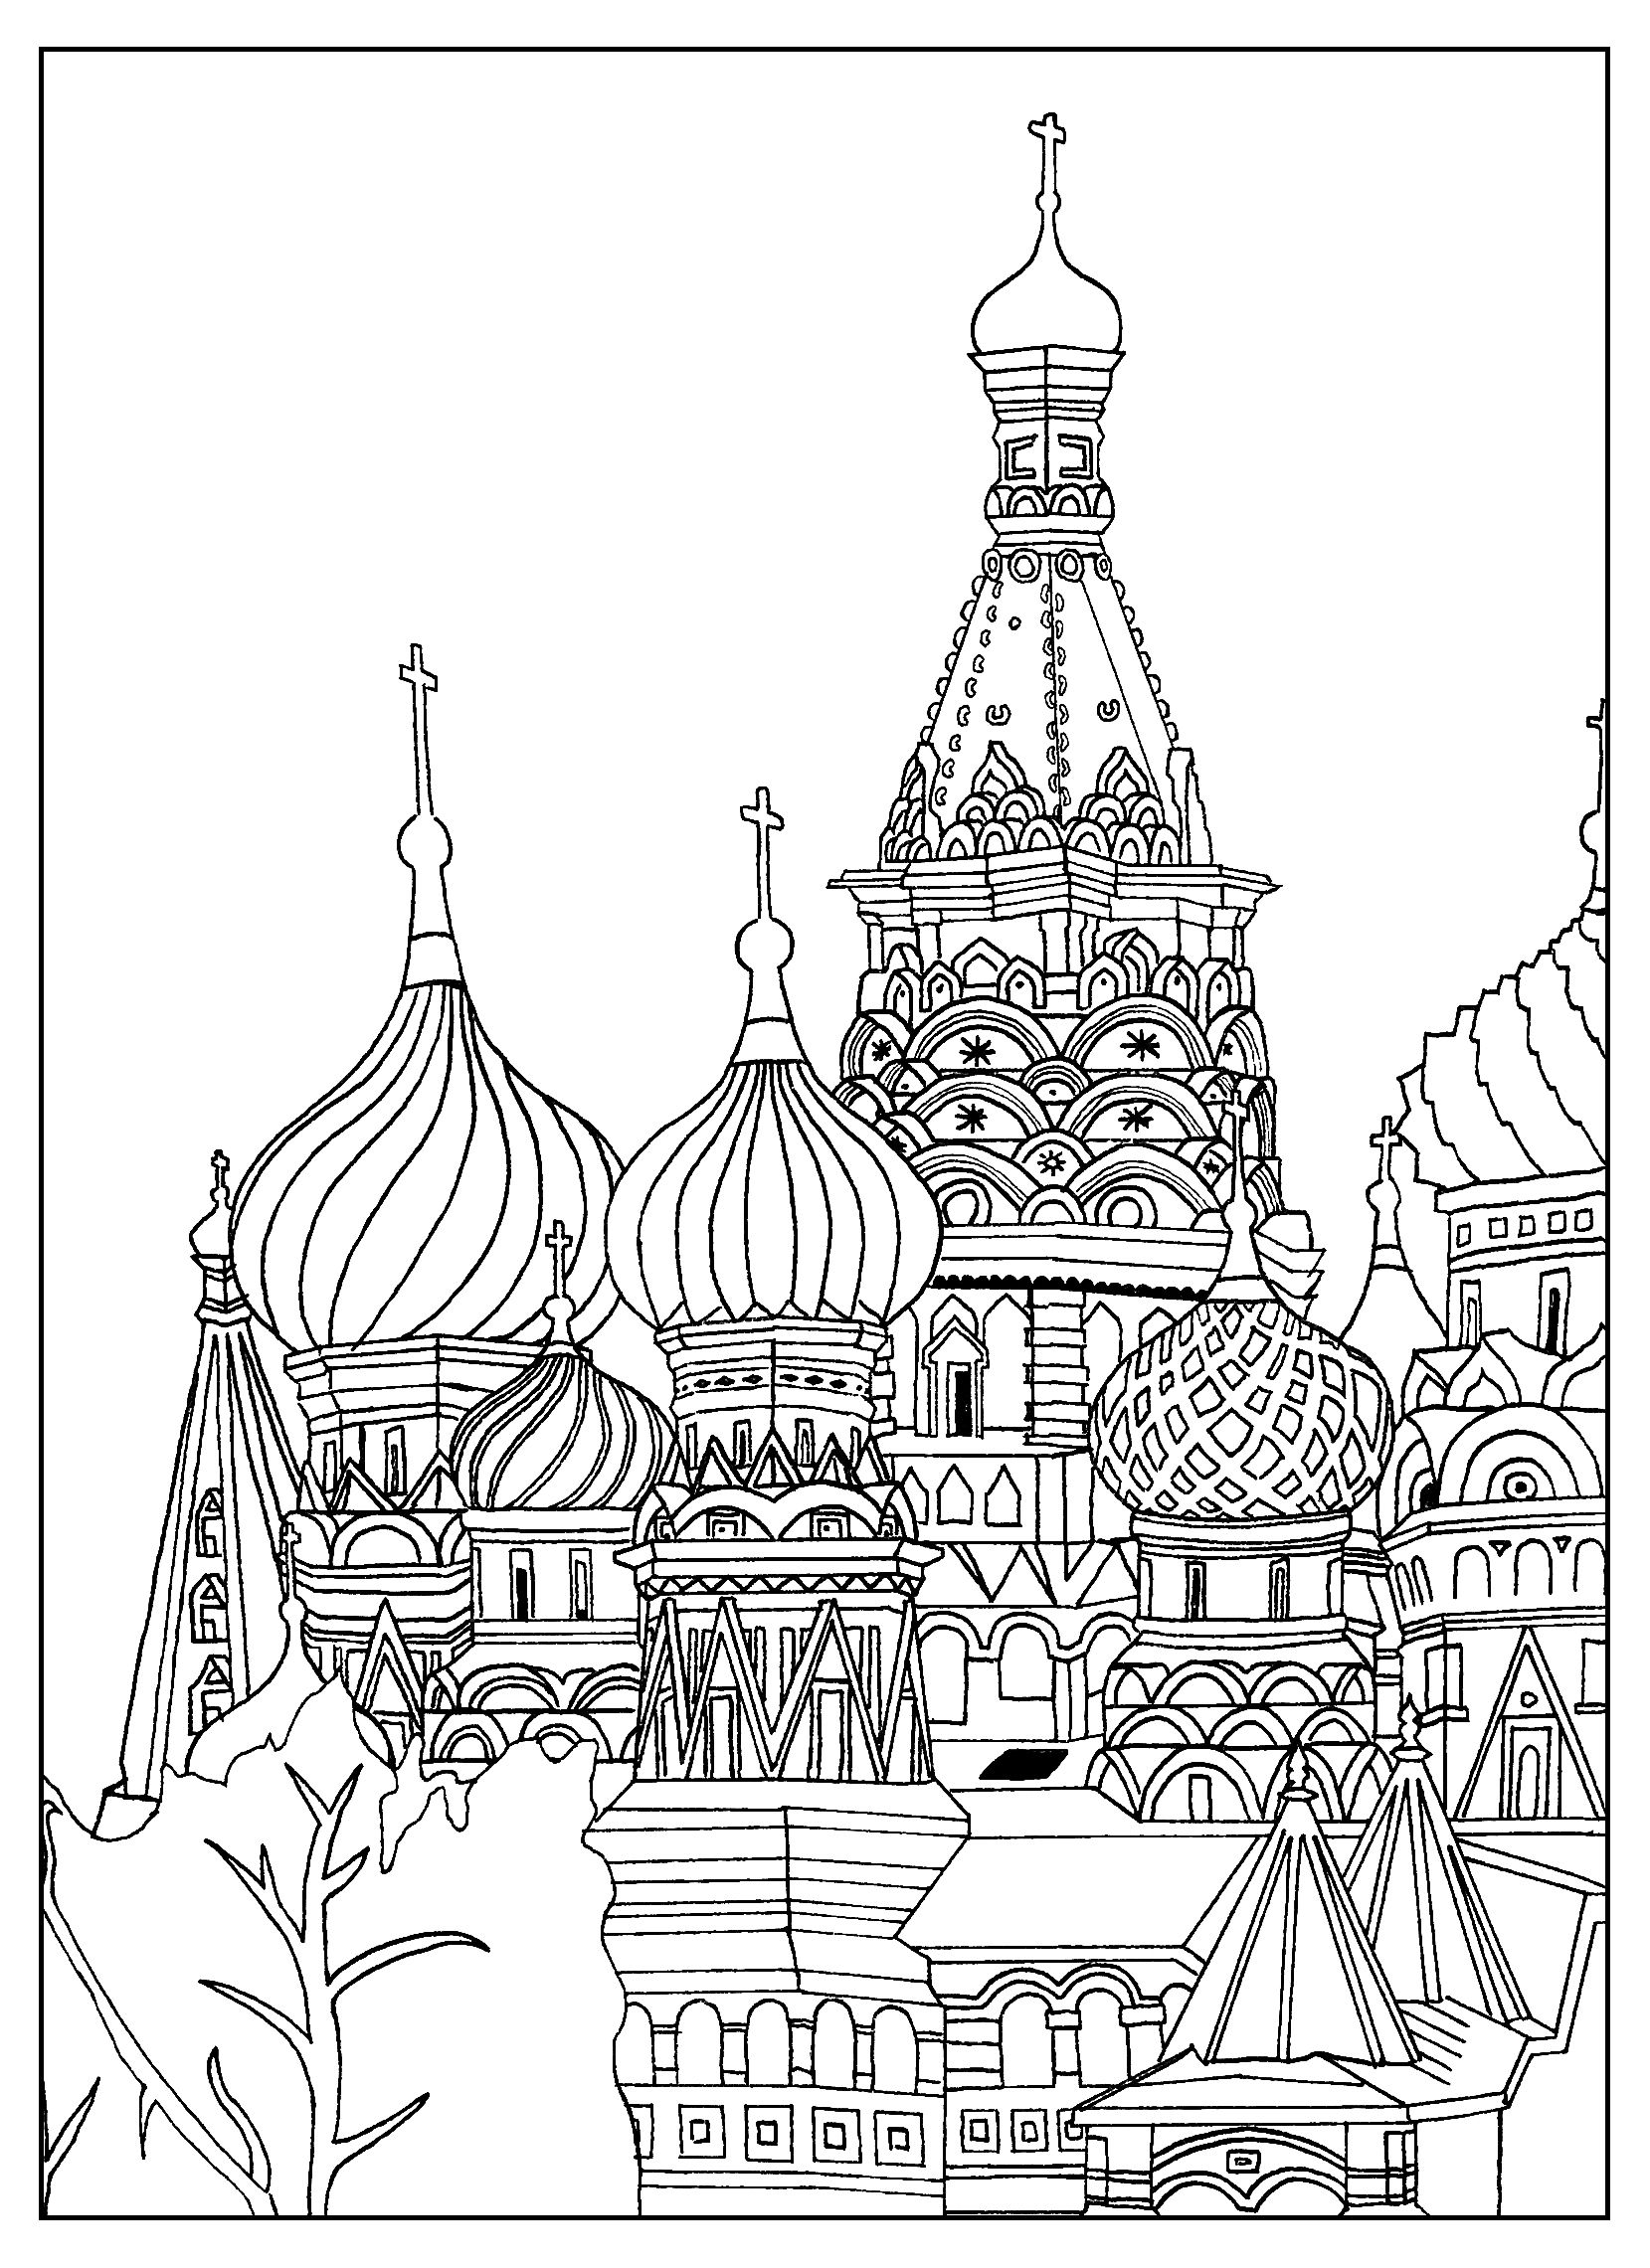 Free Adult Coloring Page Of The Saint Basils Cathedral In Red Square Moscow